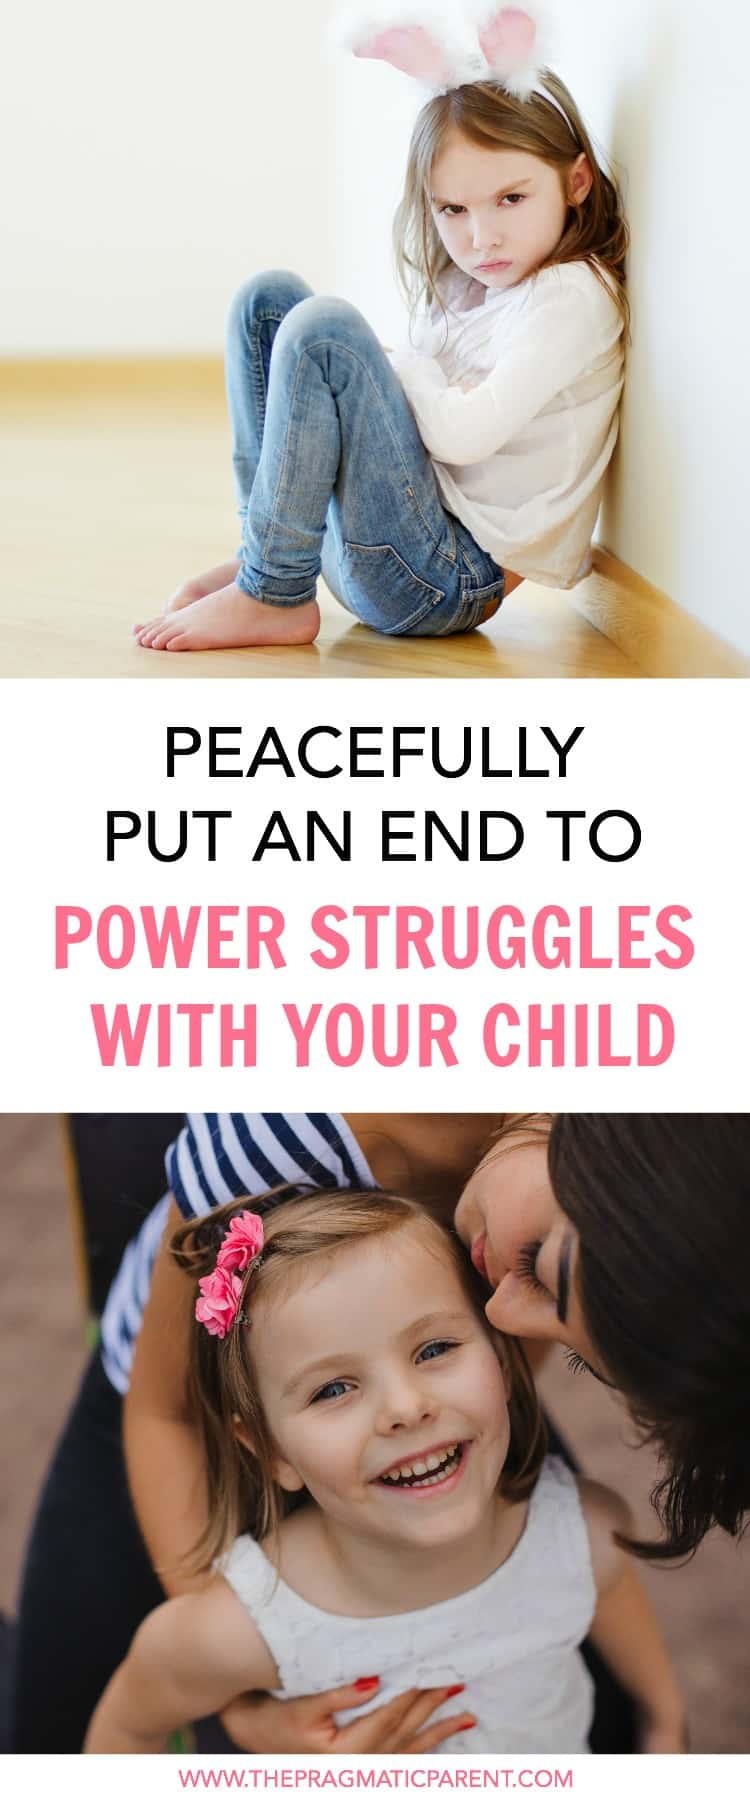 Peacefully Resolve Power Struggles & Difficult Behavior With Your Child